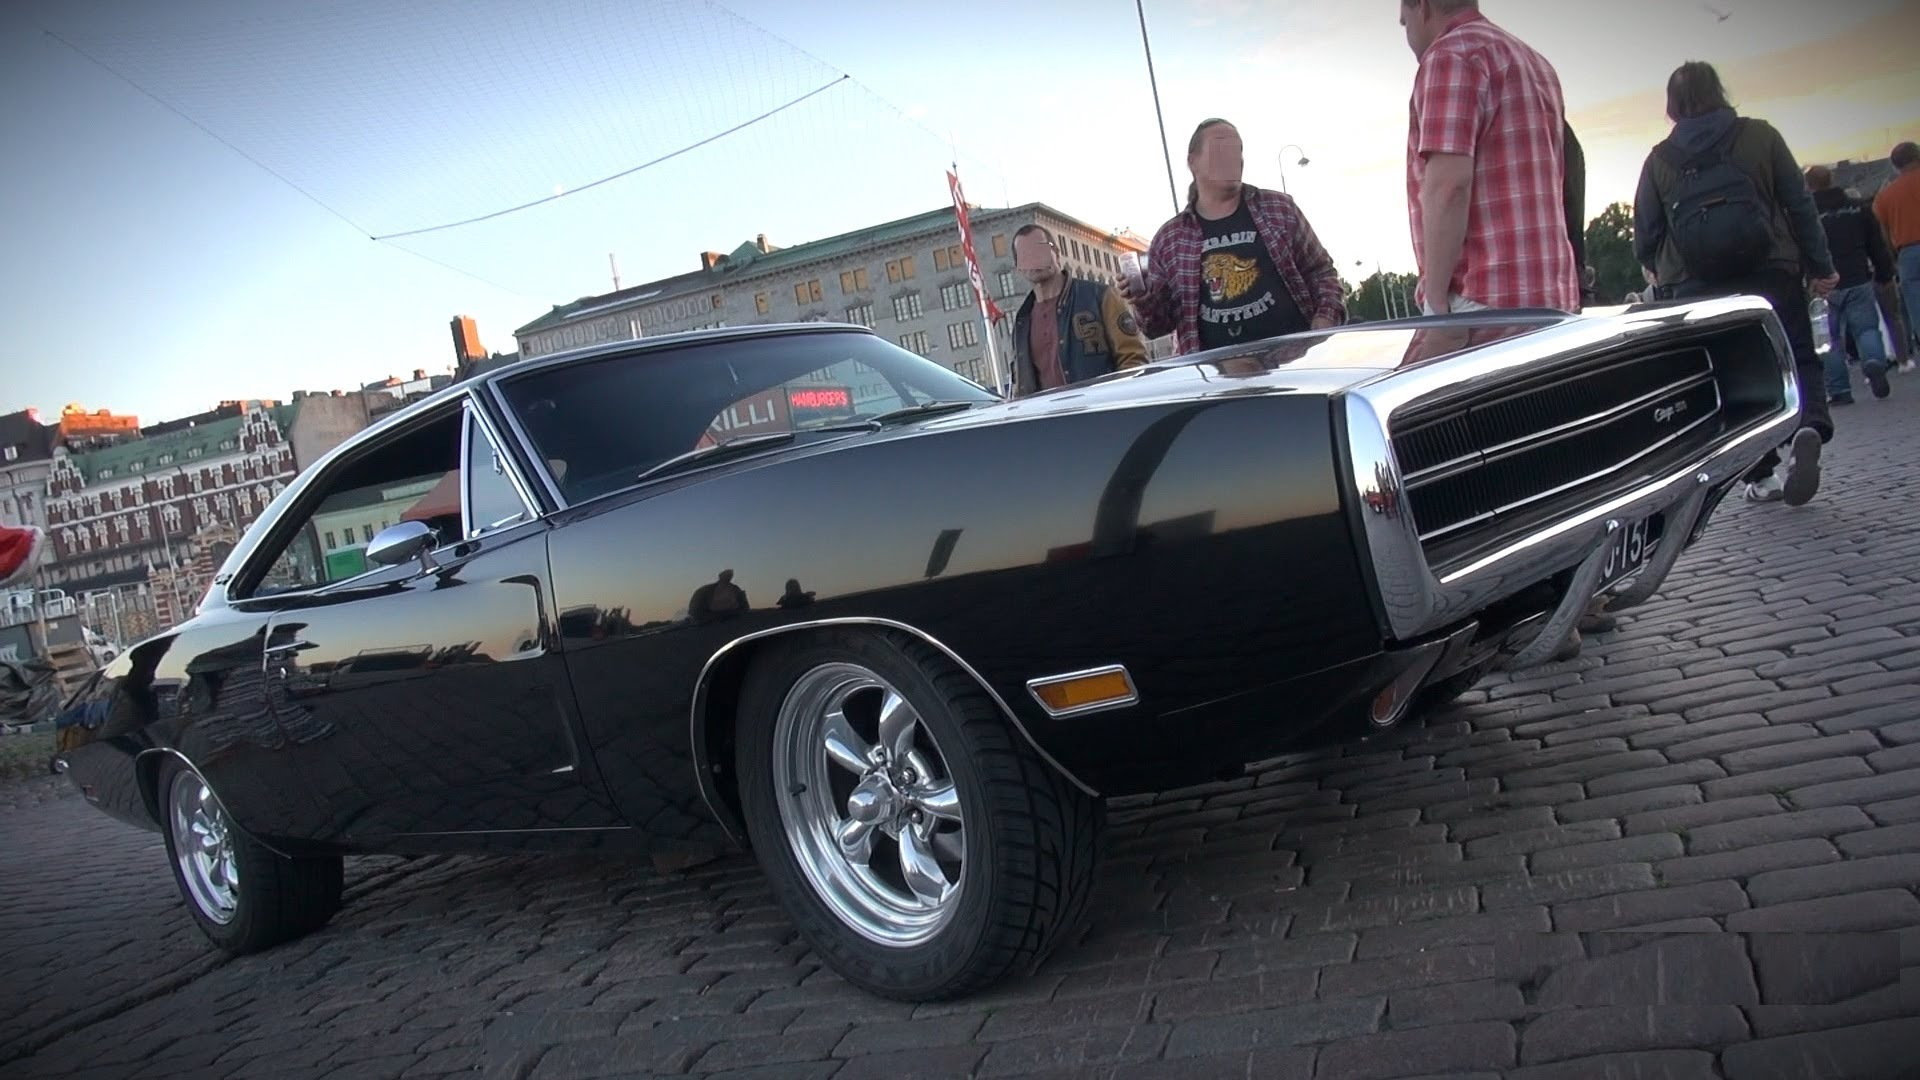 1970 Dodge Charger 500 572 Hemi With Insane V8 And Exhaust Sound!